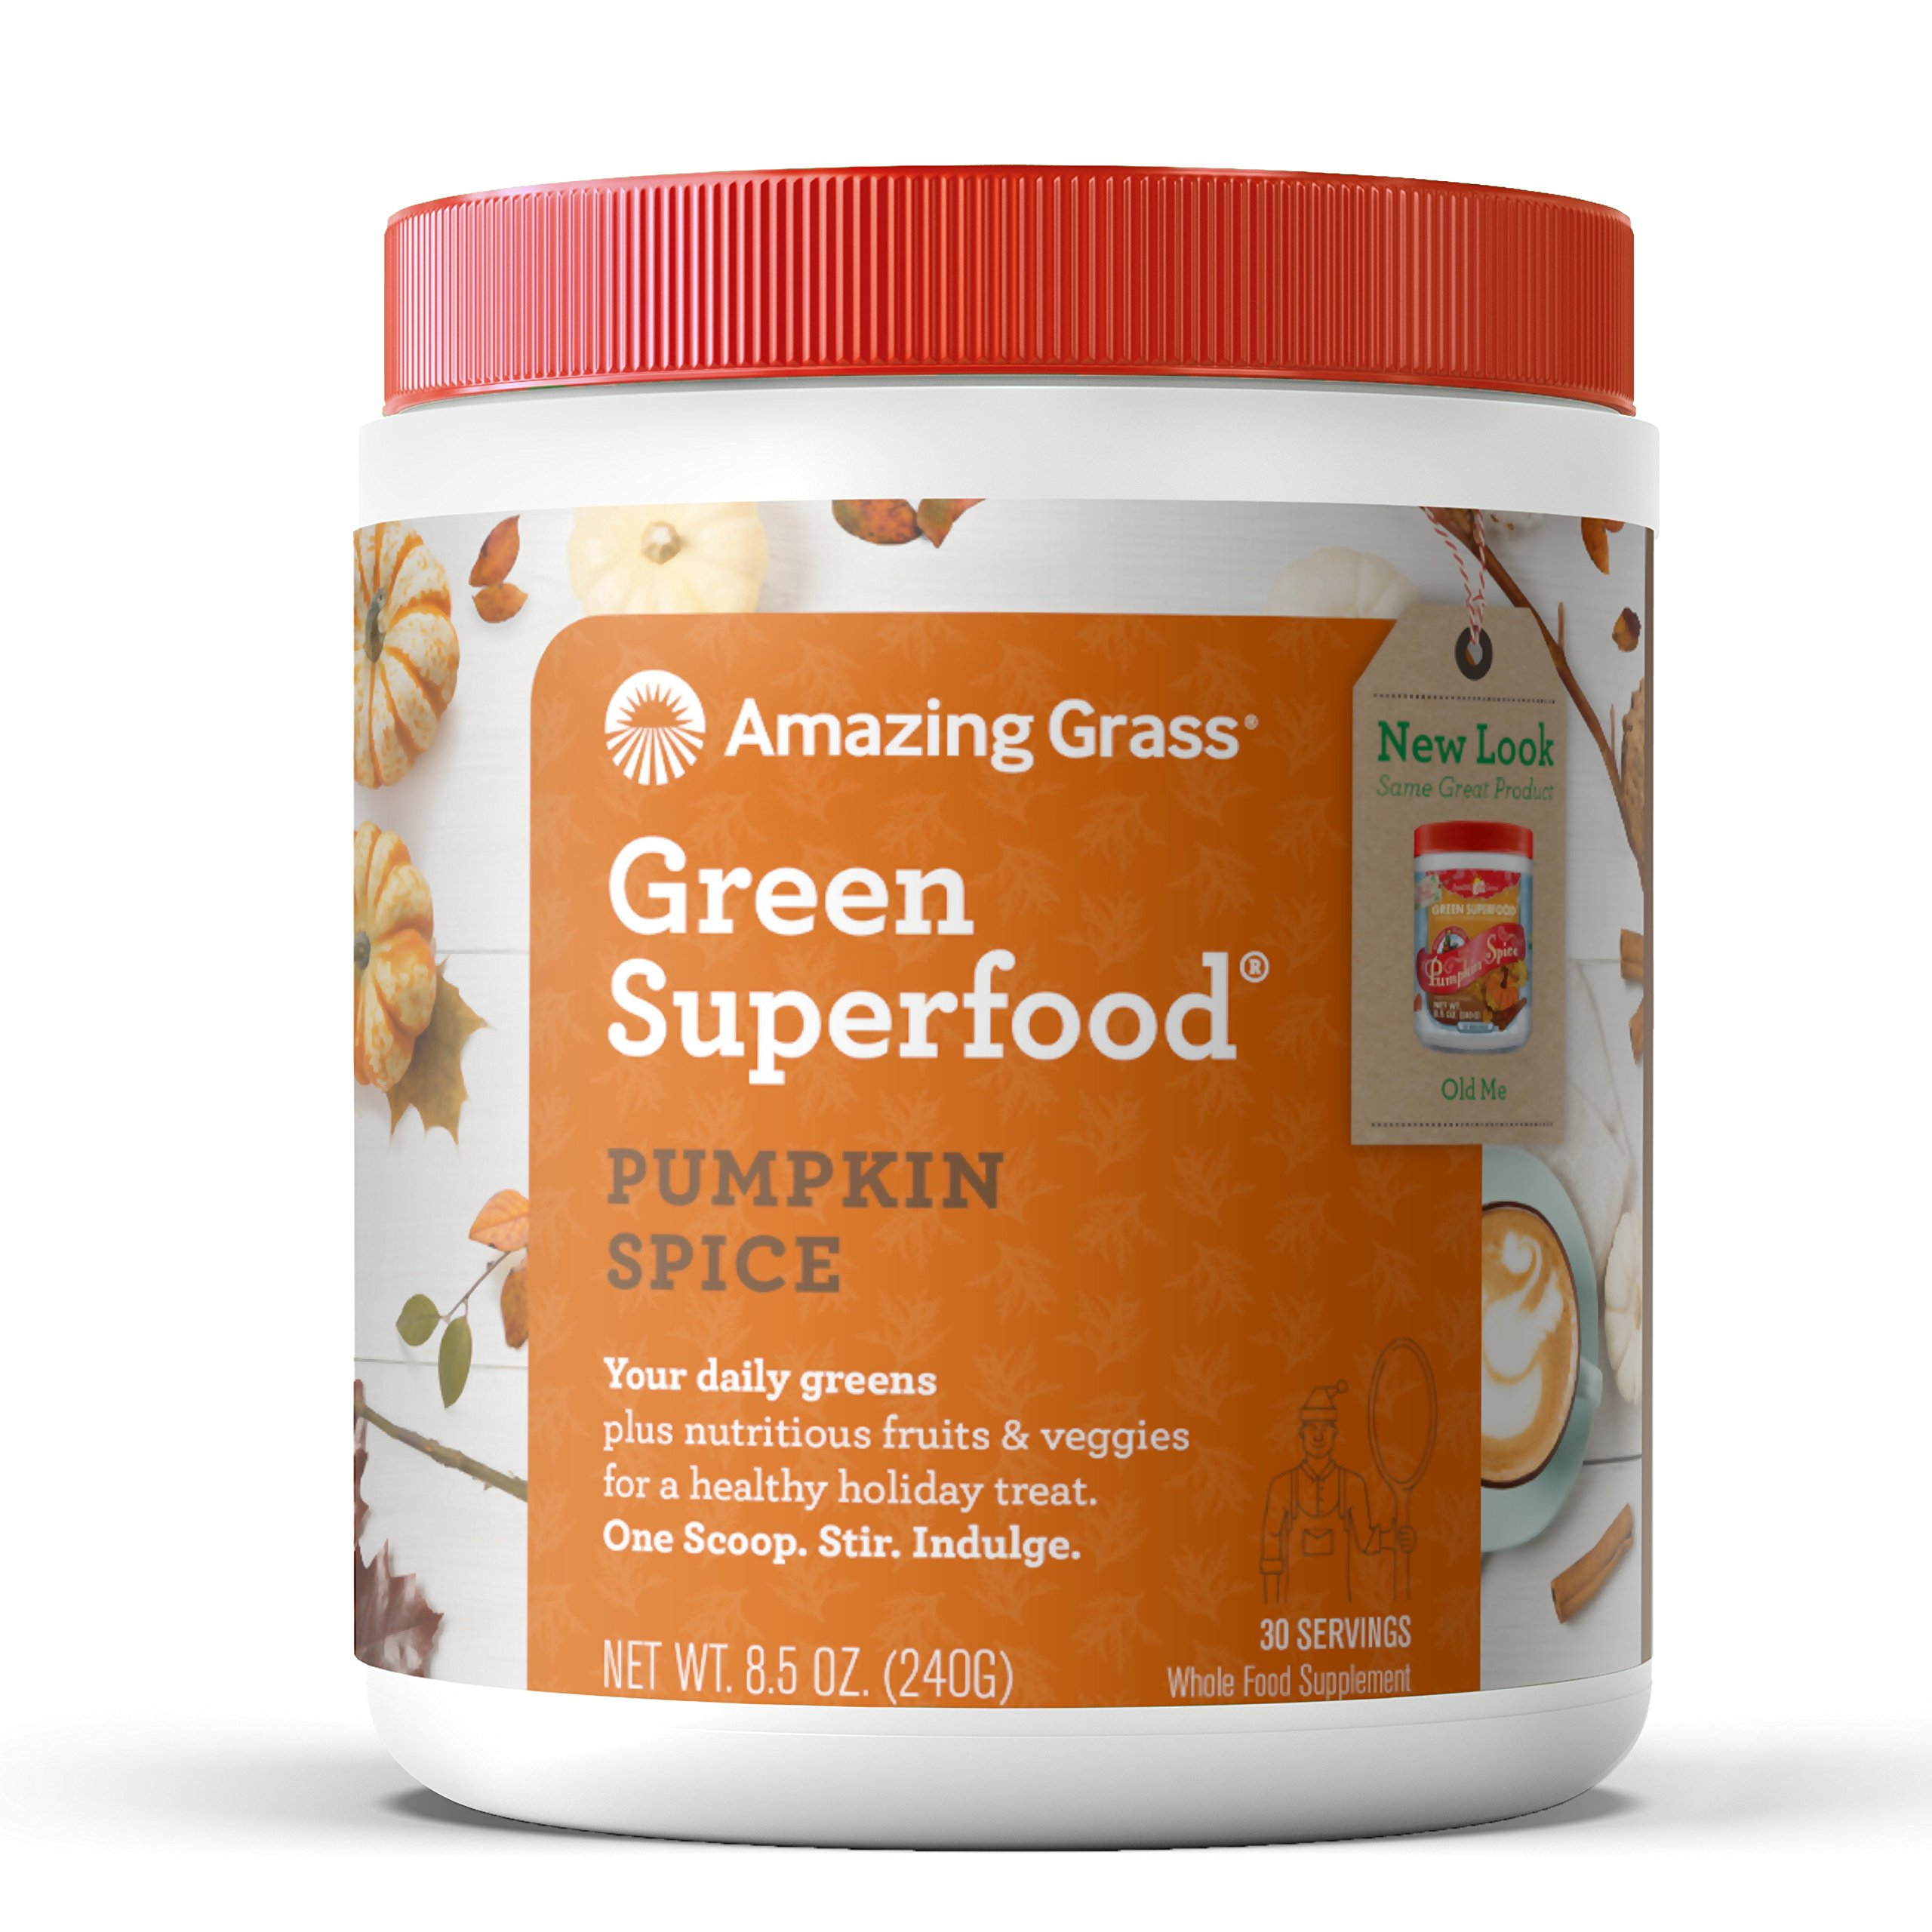 Amazing Grass Green Superfood Organic Powder with Wheat Grass and Greens, Flavor: Pumpkin Spice, 30 Servings